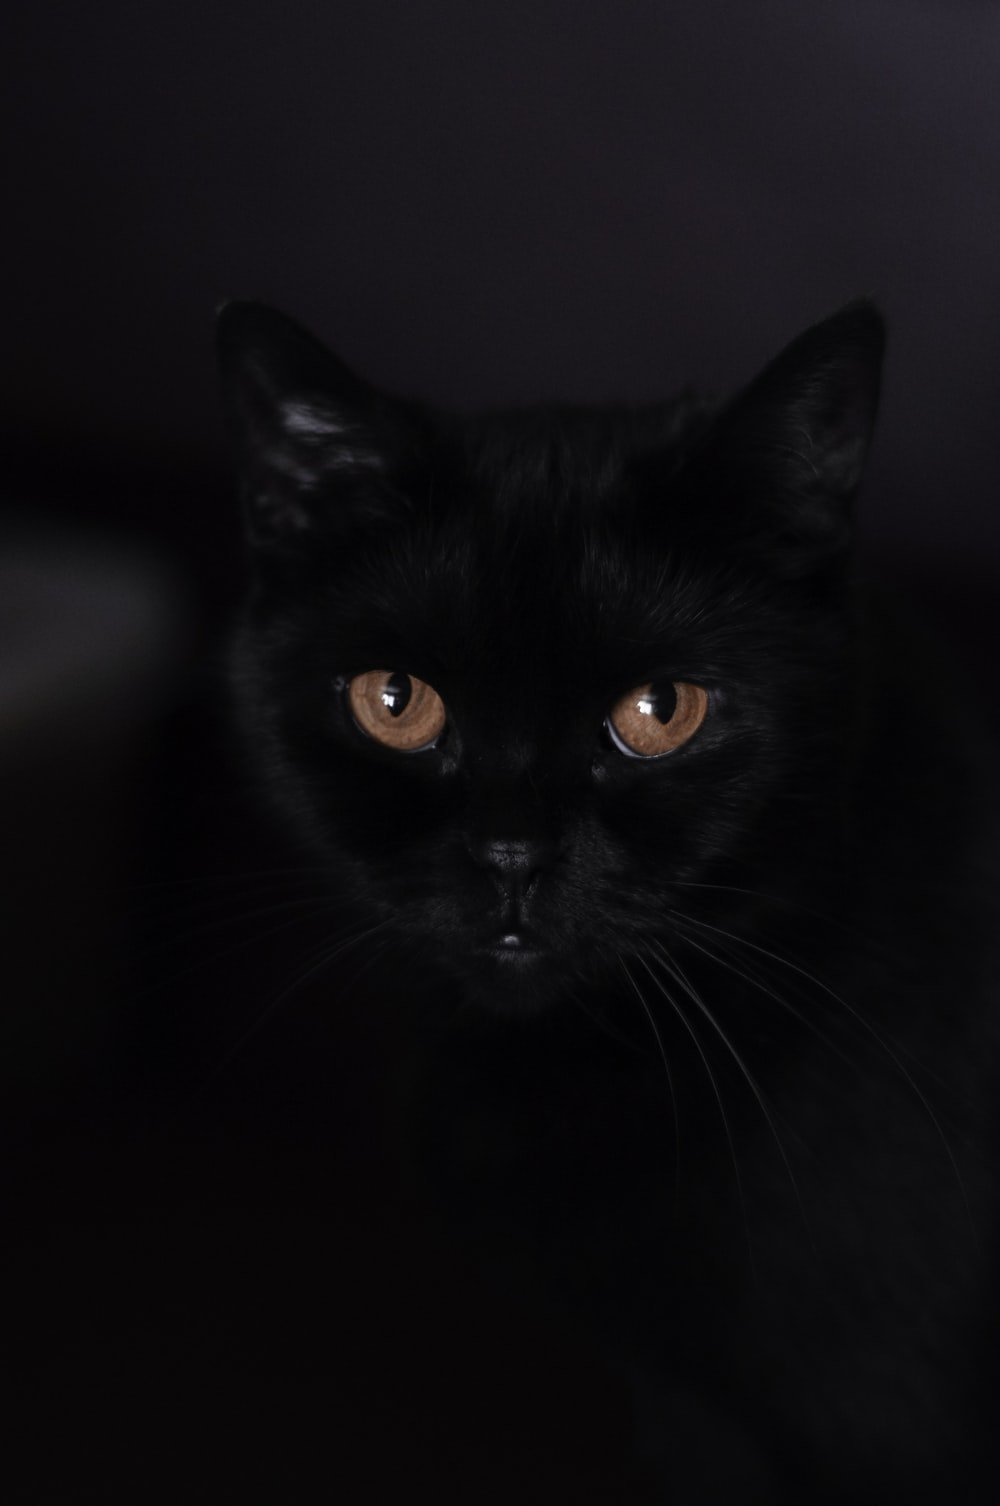 bombay cat on selective focus photography